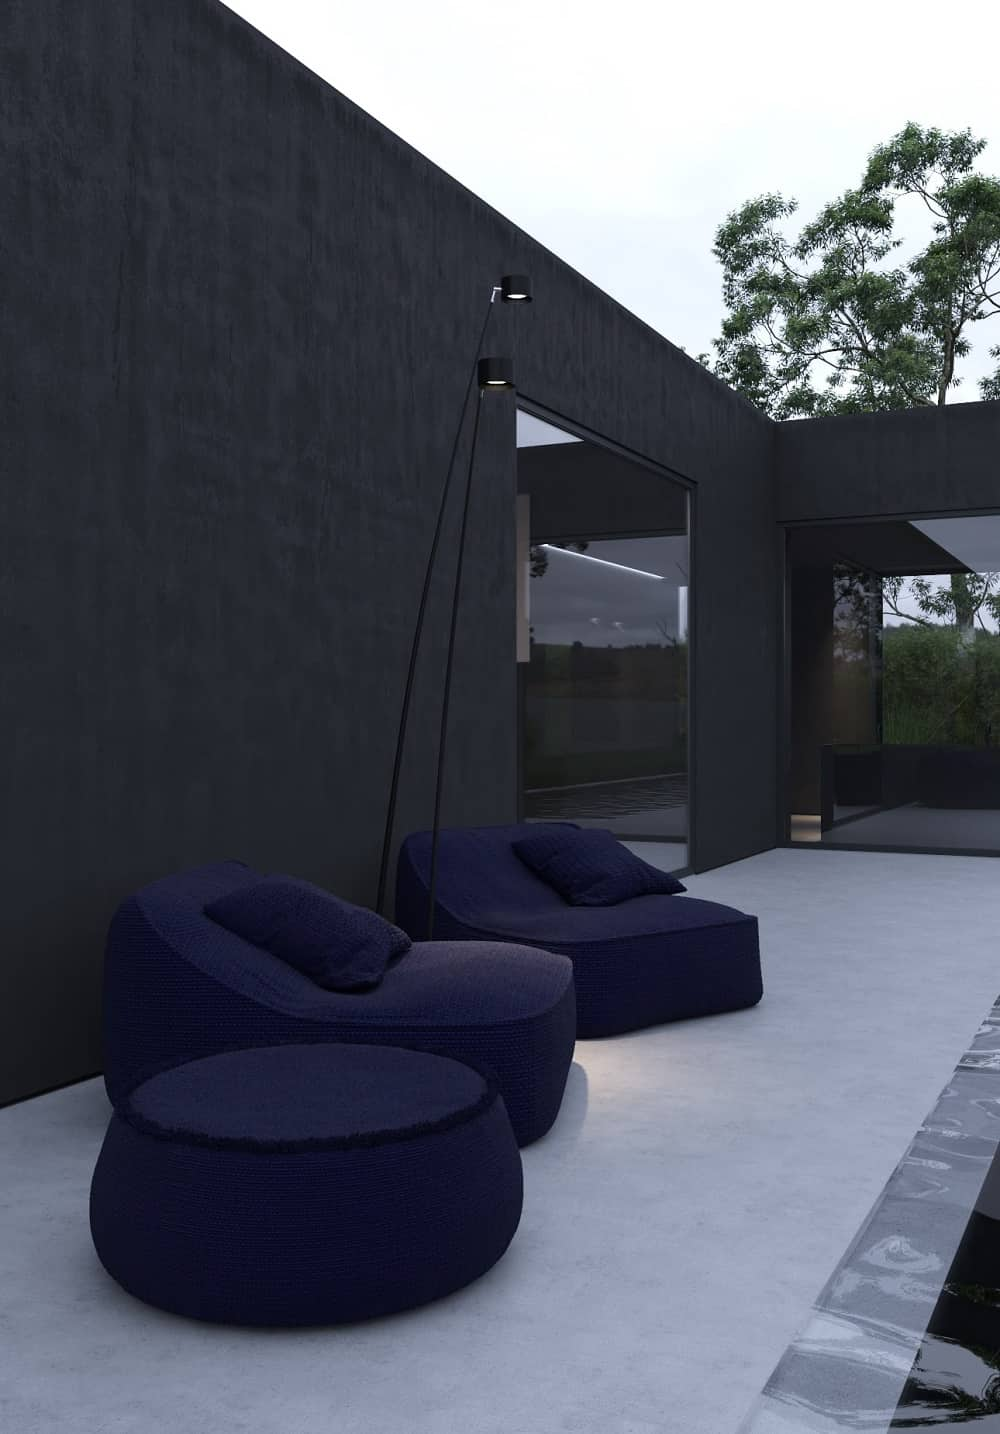 The poolside area is adorned by the large cushioned outdoor dark lounge chairs and a matching cushioned coffee table.